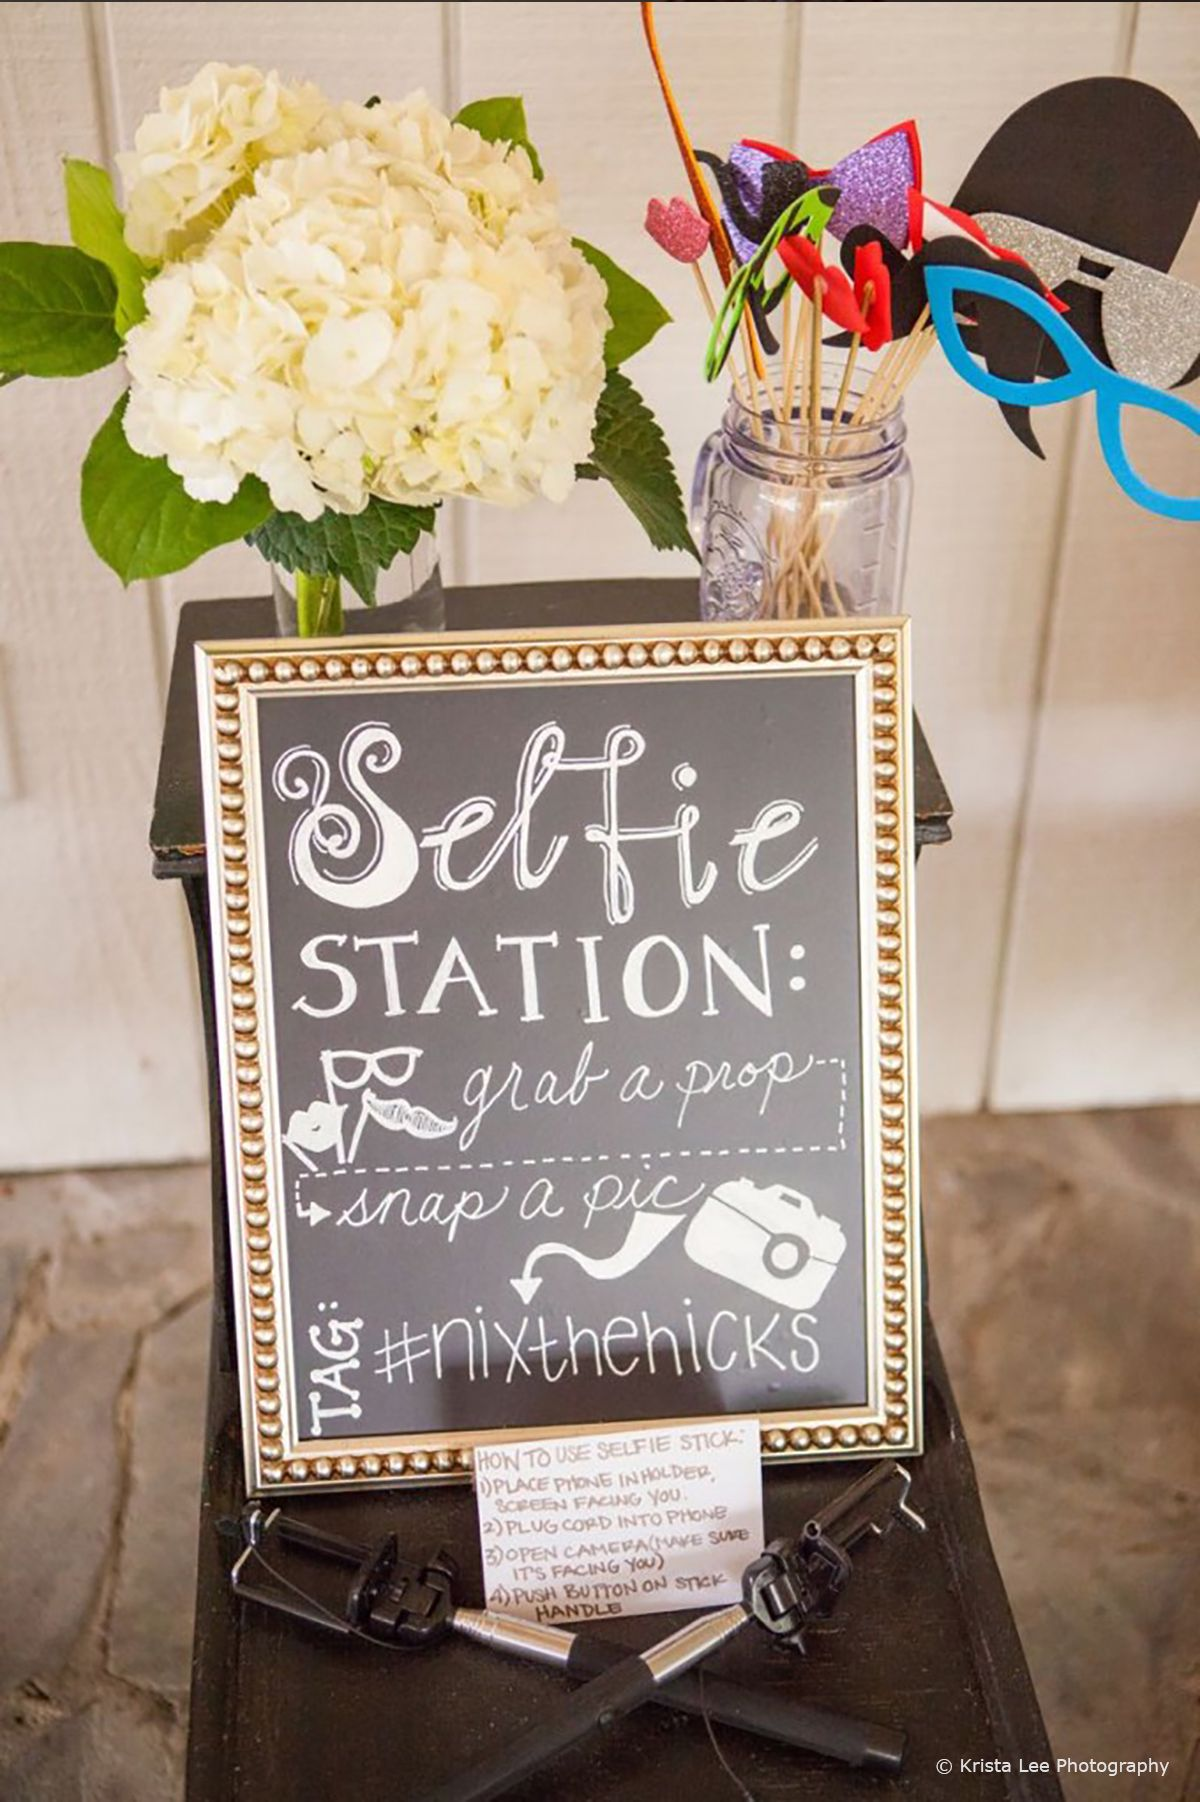 Selfie station photobooth wedding entertainment ideas photo booth 18 rustic wedding hashtag ideas to share photos on your wedding solutioingenieria Images